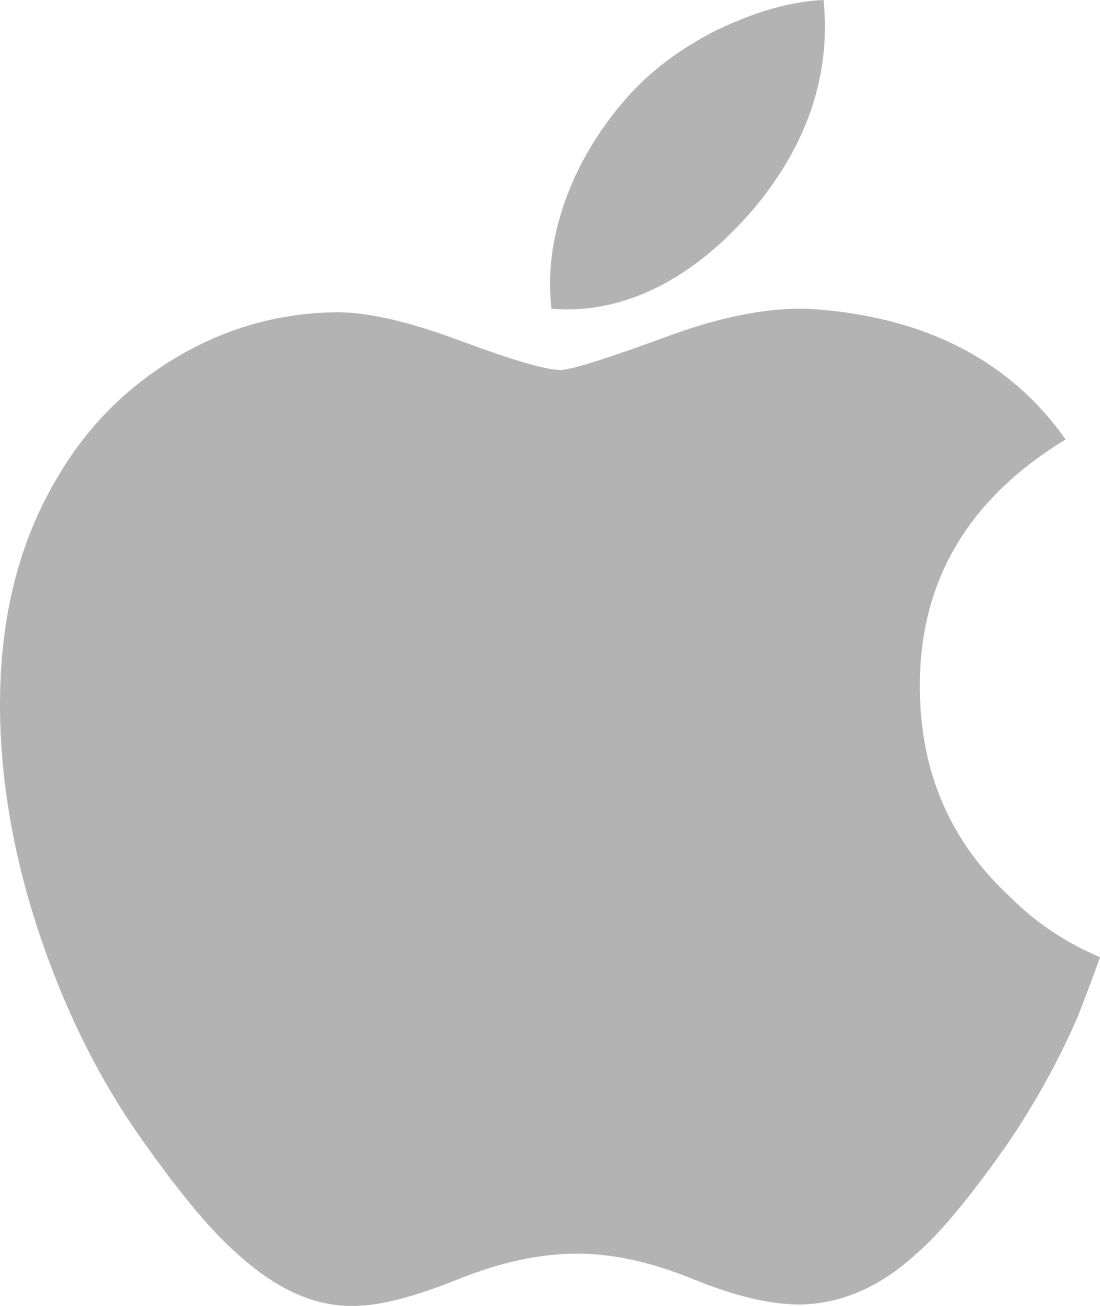 apple logo 6 - Apple Logo